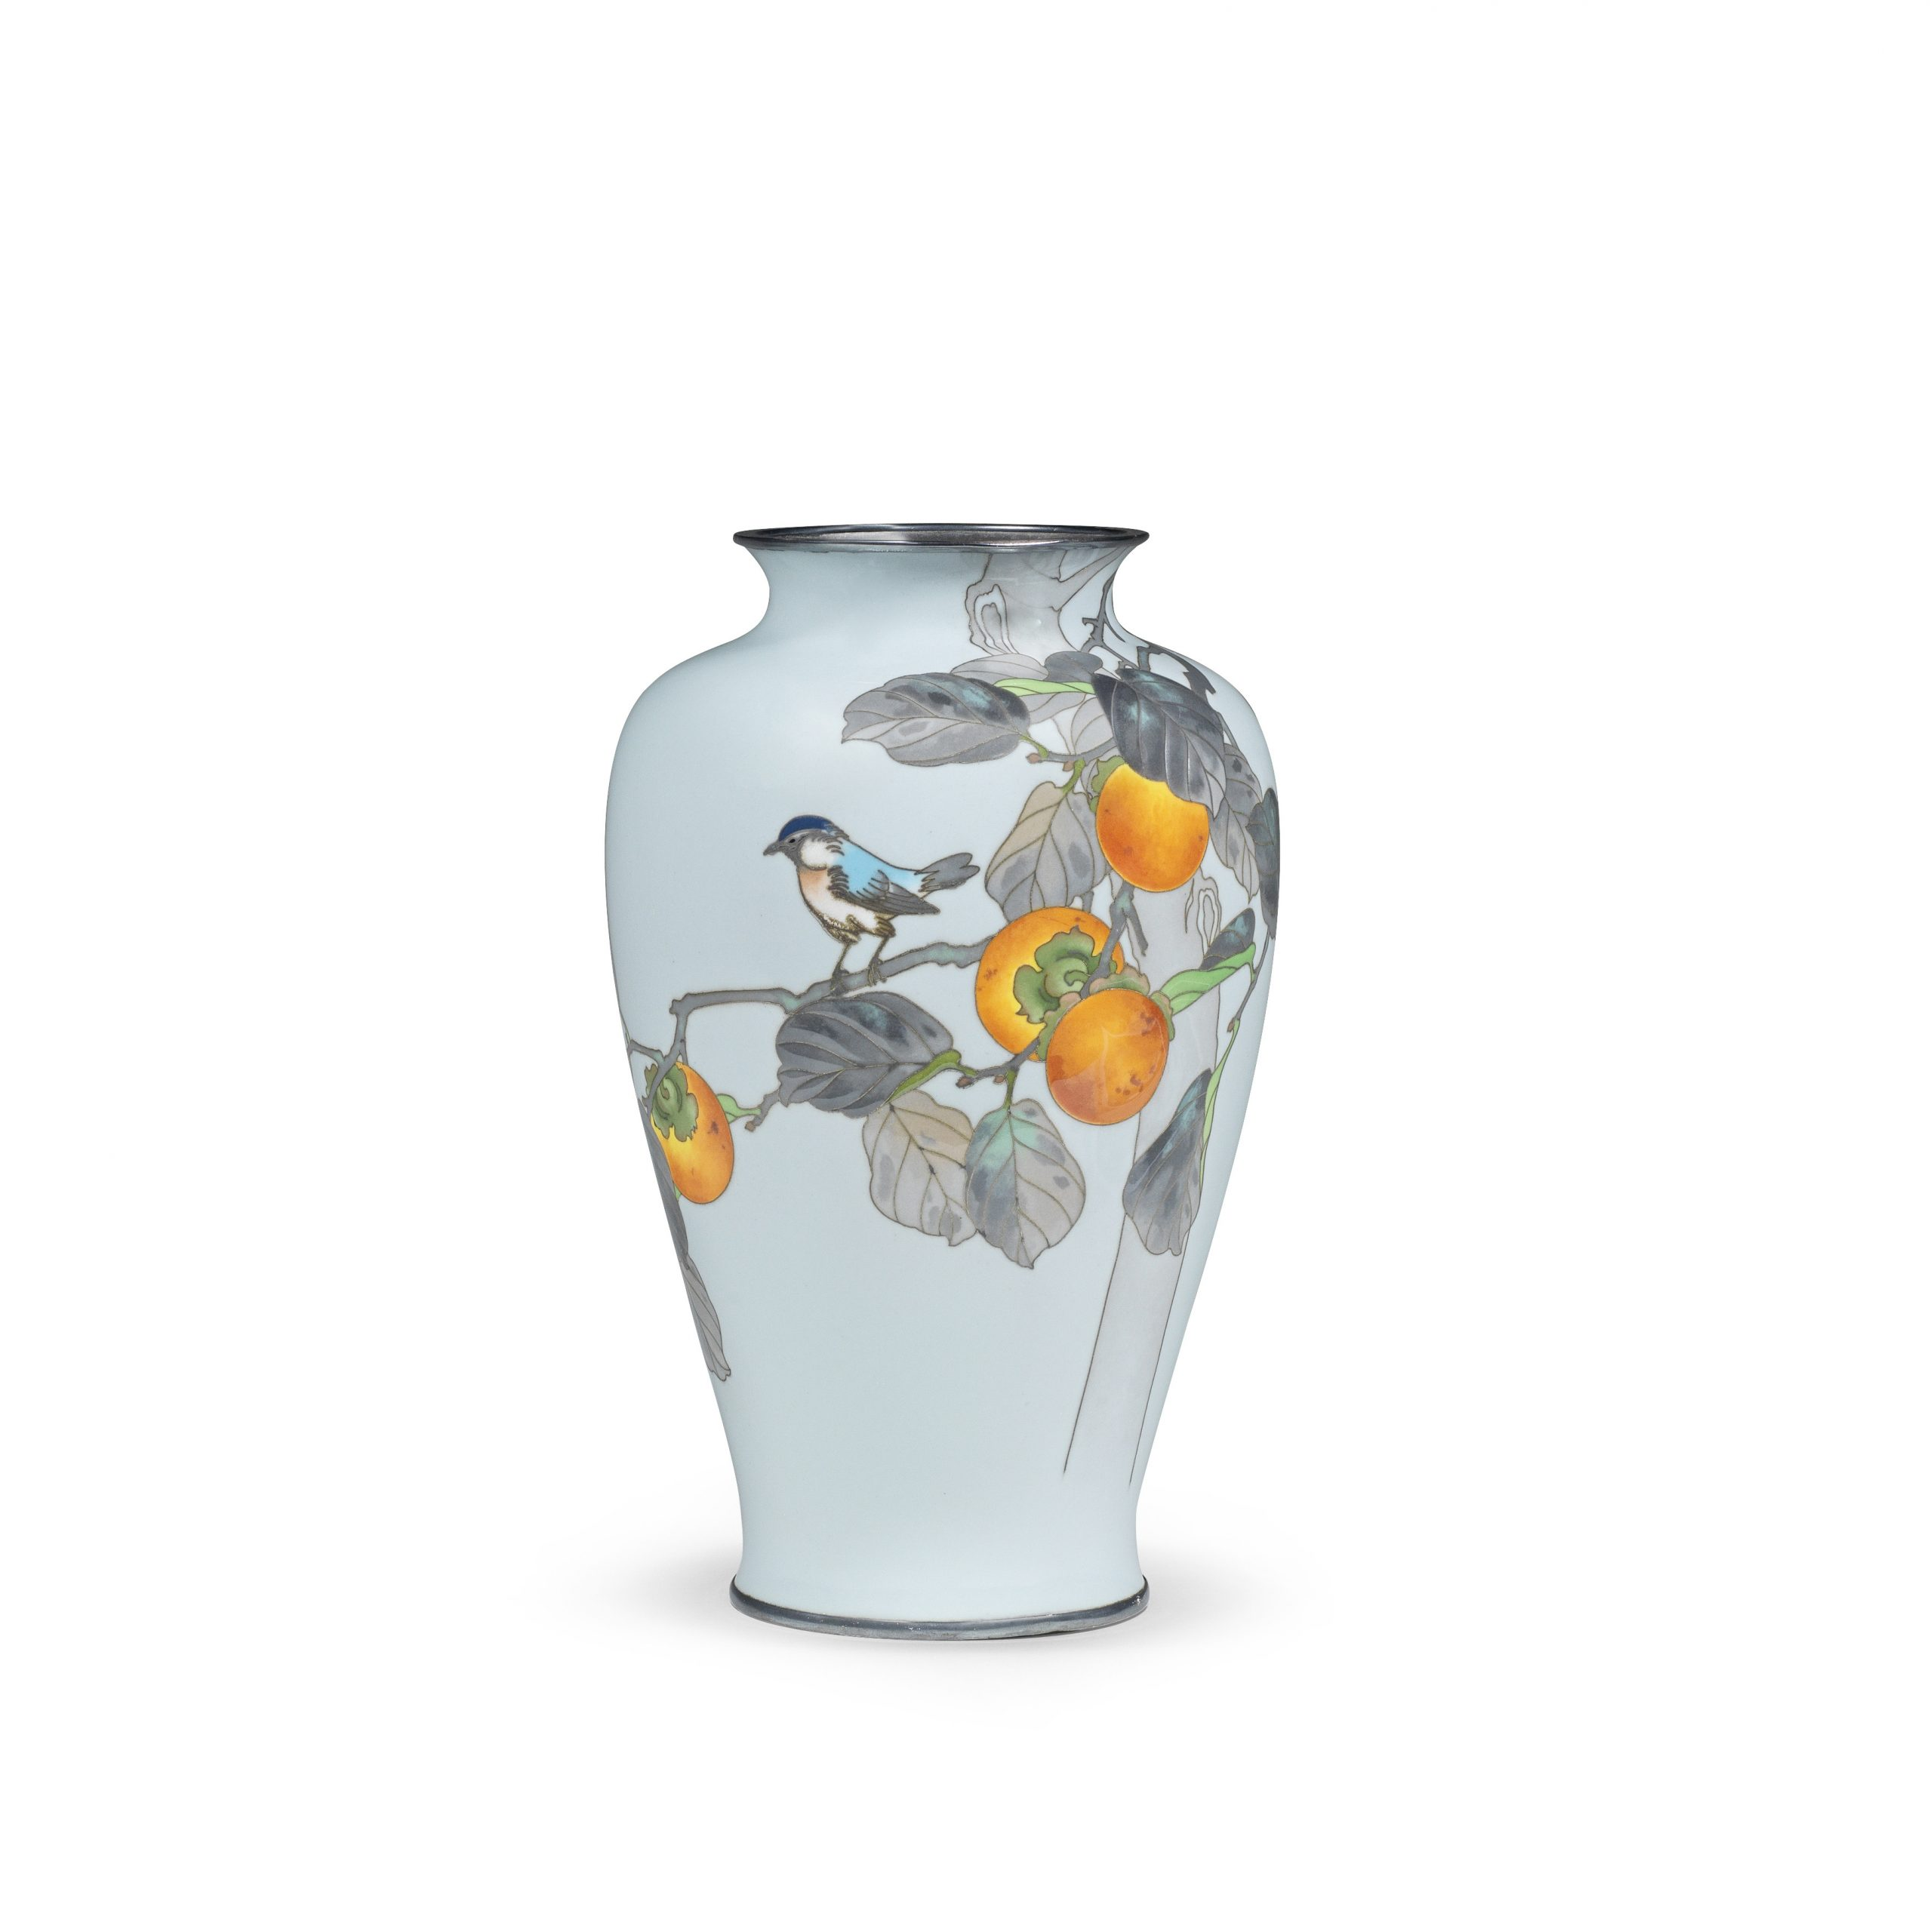 A cloisonné-enamel moriage baluster vase, By the workshop of Ando Jubei of Nagoya, Meiji (1868-1912) or Taisho (1912-1926), early 20th century - Snow, Sex and Spectacle